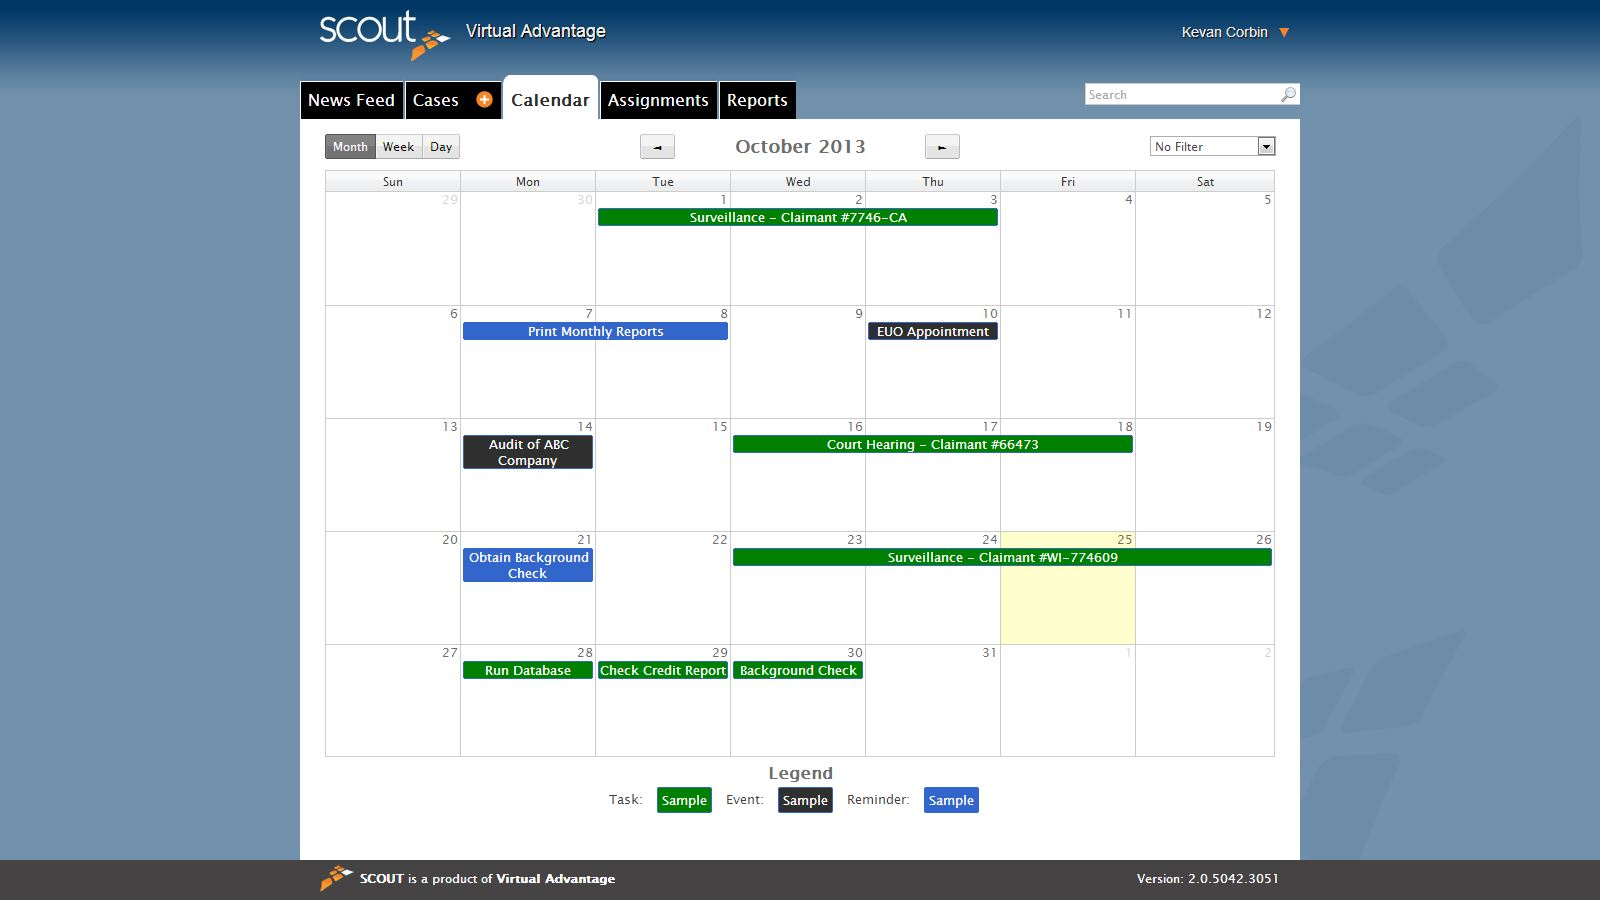 Actions & Calendar Case Management Software